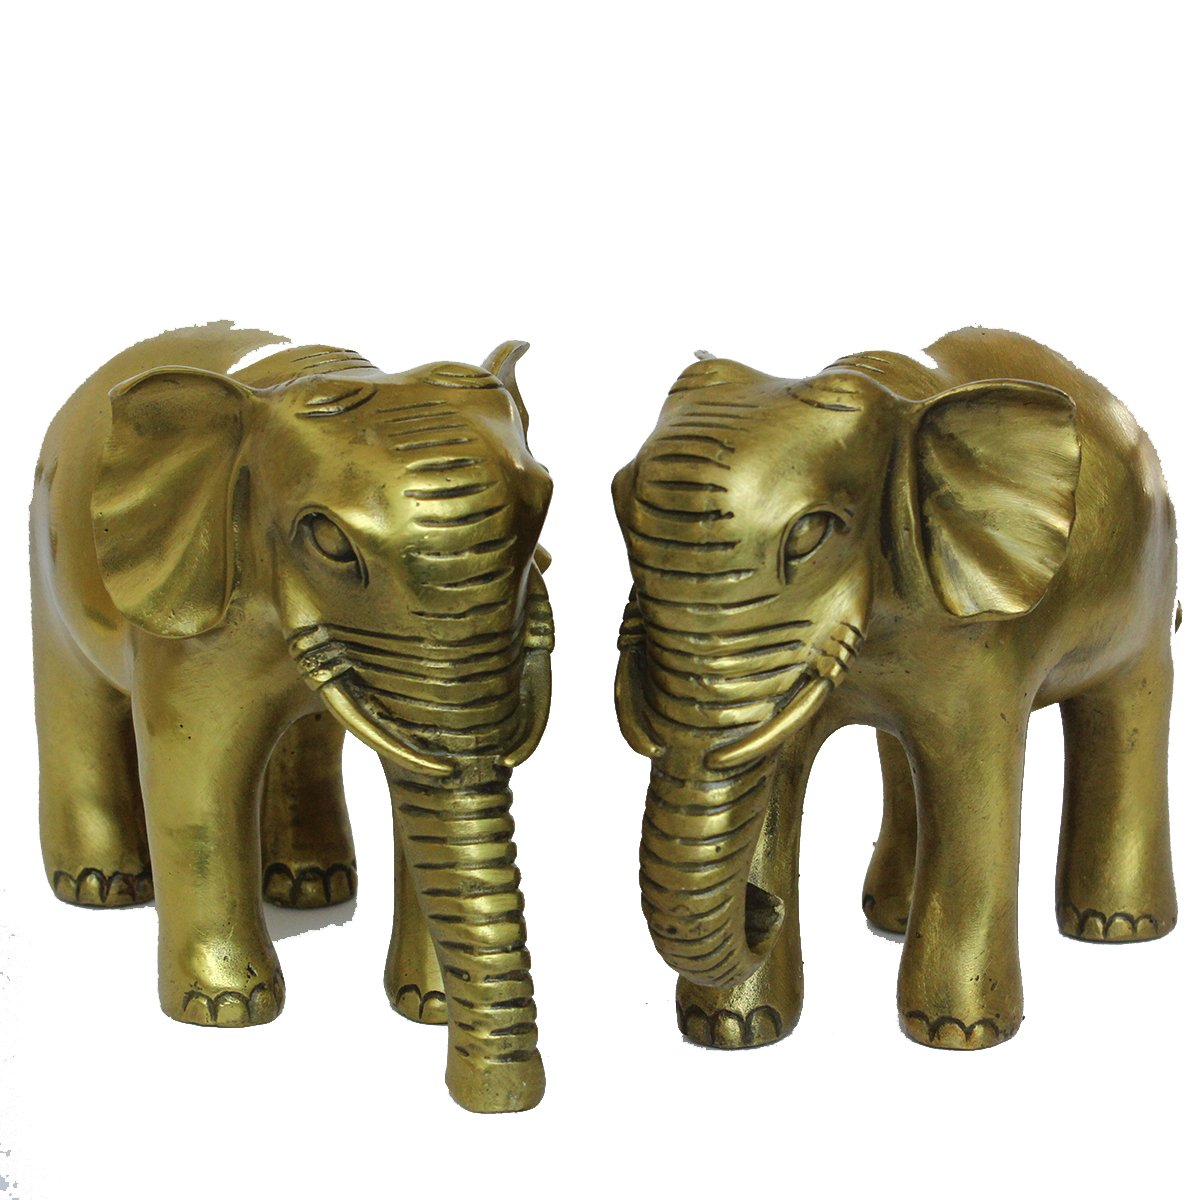 FENGSHUI Handmade Super Unique Elephants Statues Brass Finish Power Collectible Figurines Decoration Gift Pair/2pcs (M'')